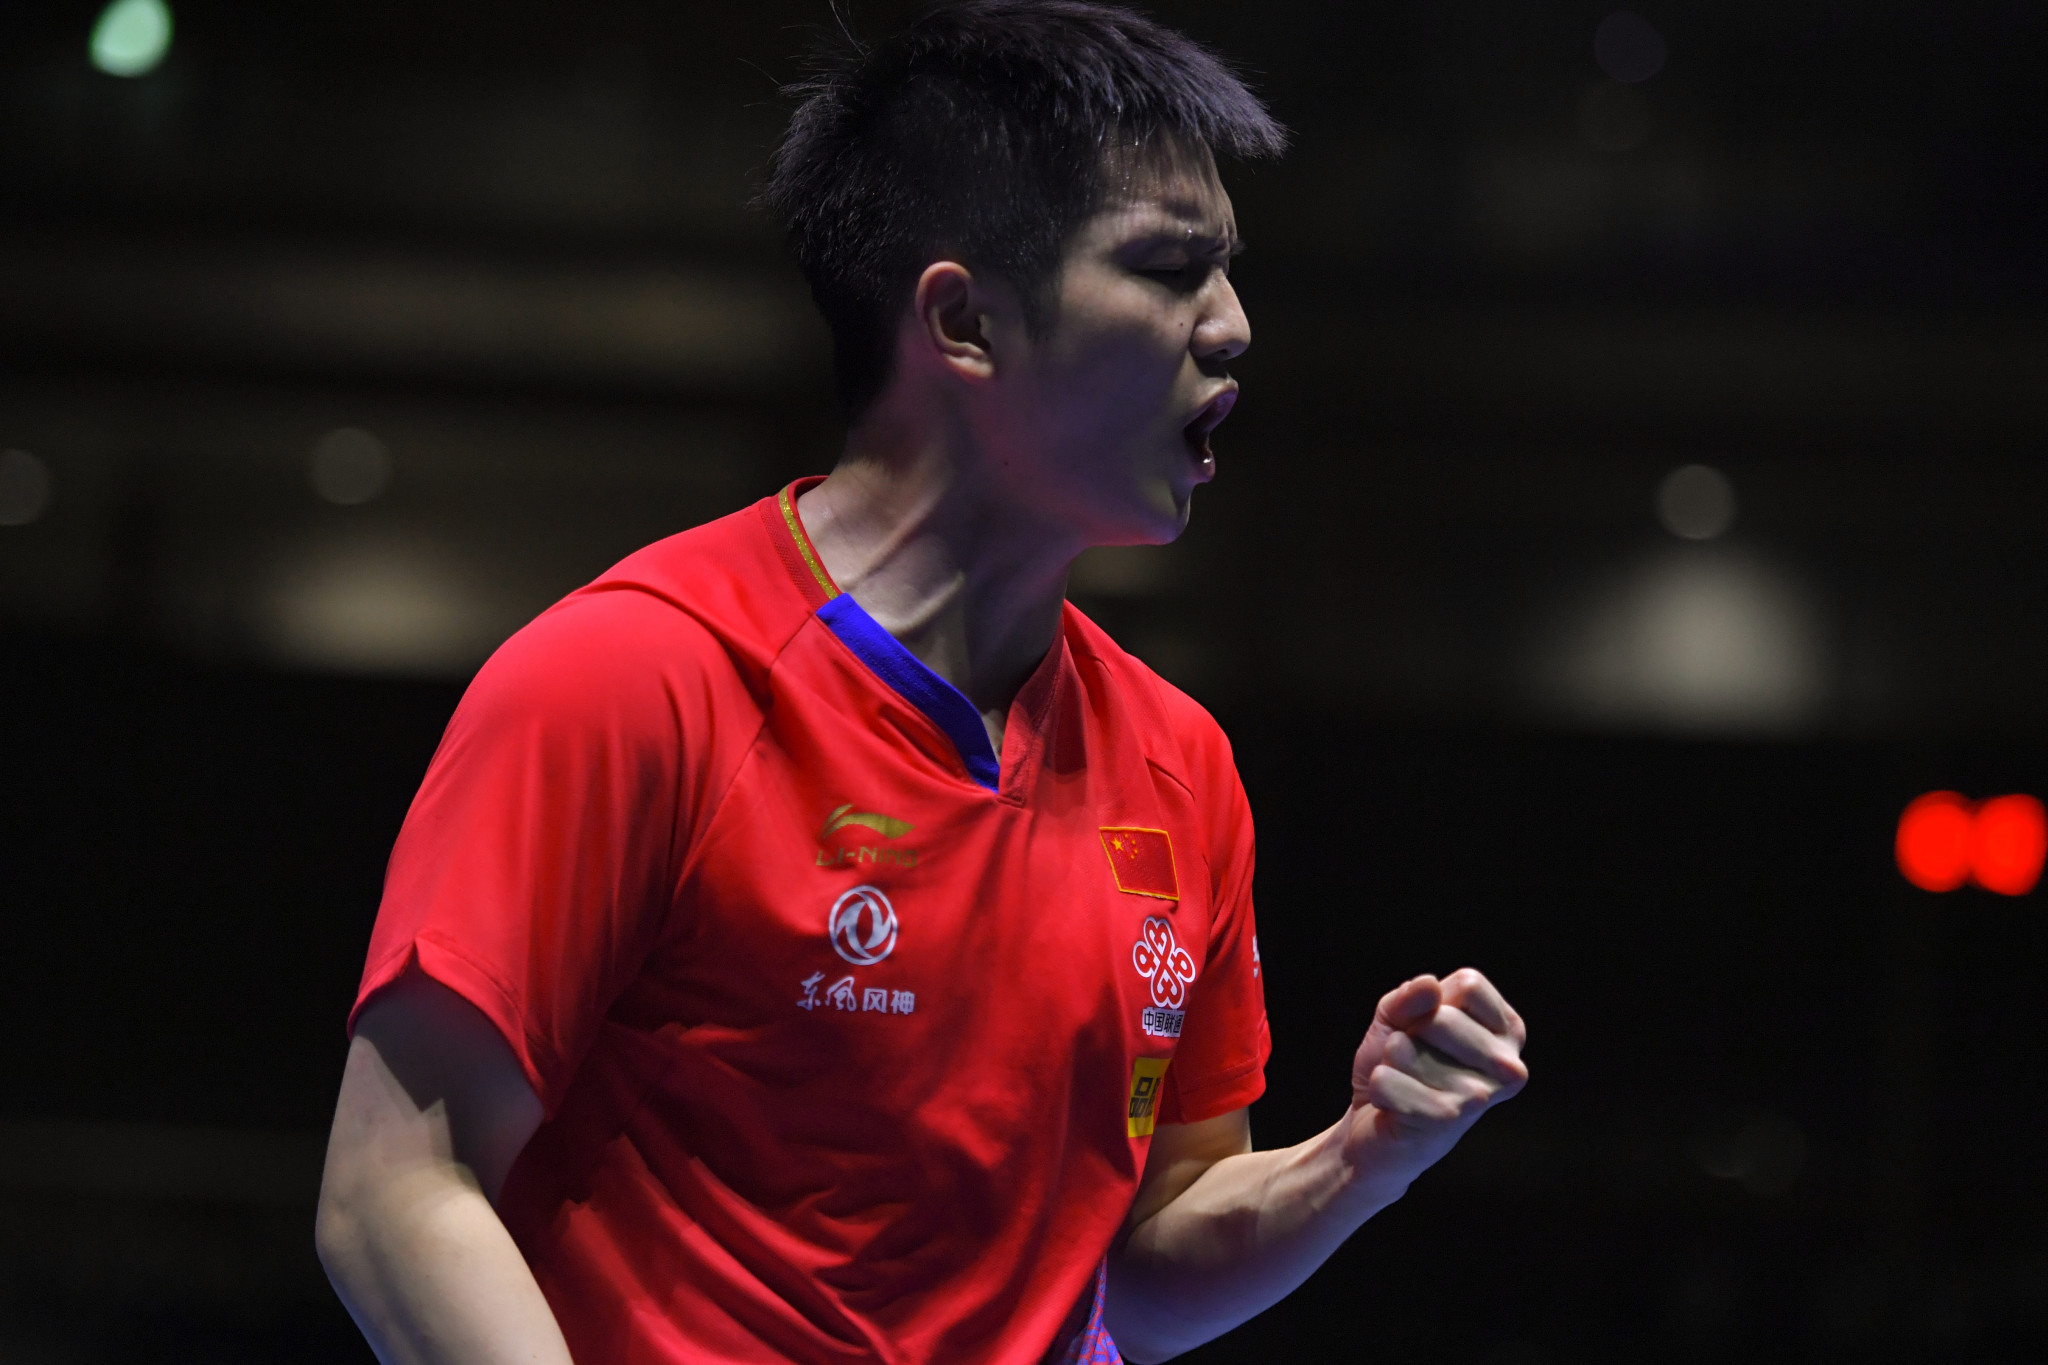 Fan beats Harimoto to defend title at ITTF Men's World Cup